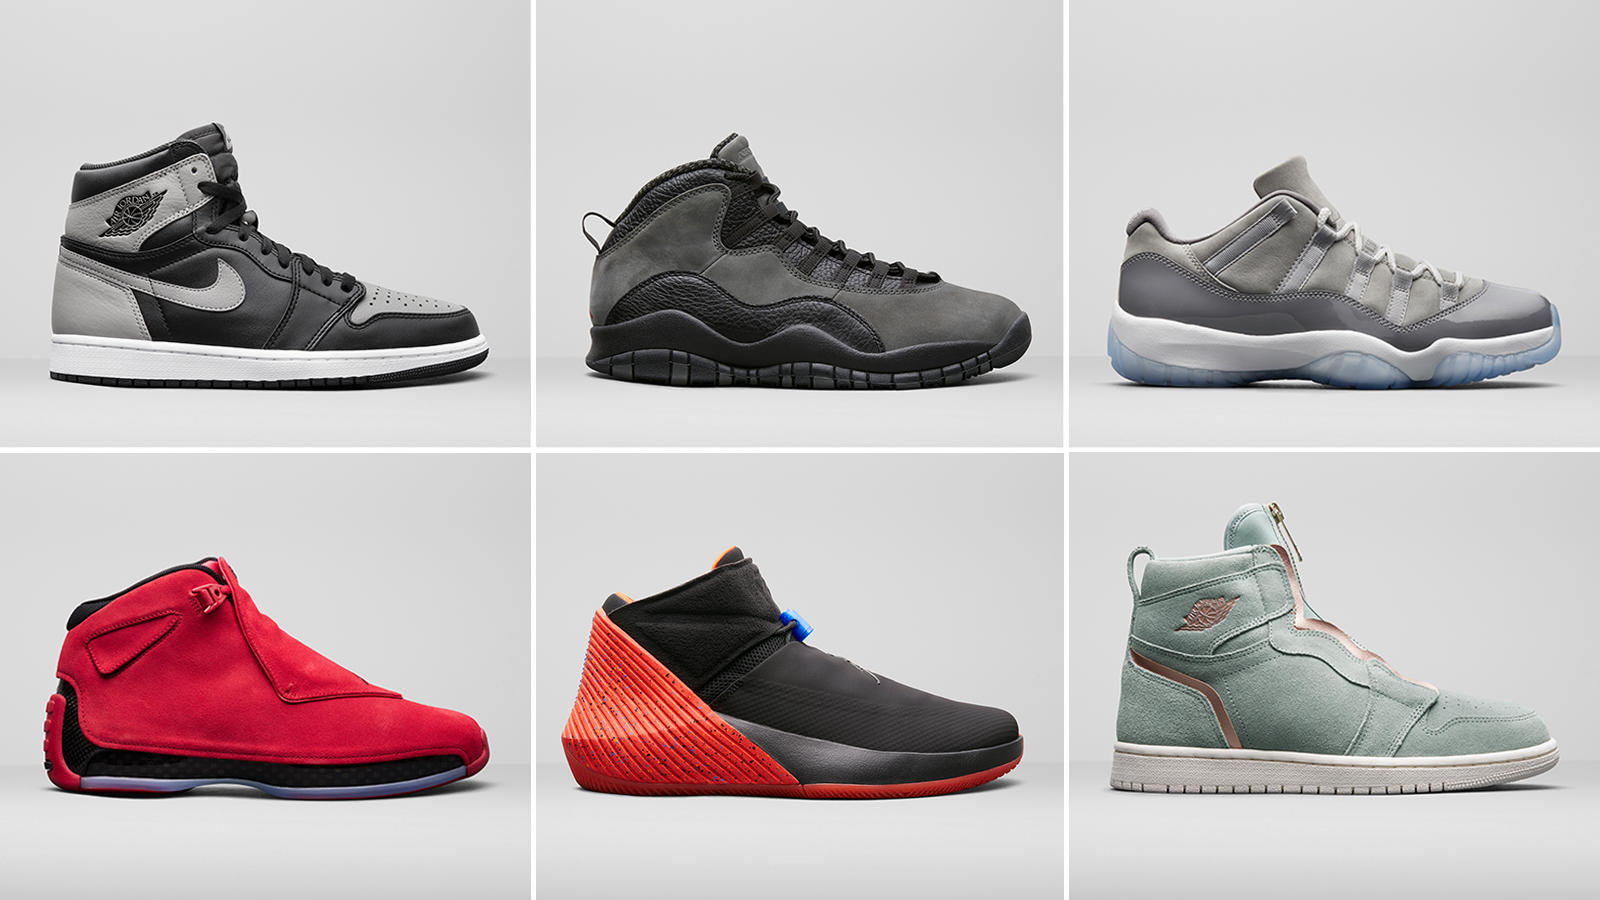 02808e30a112be Jordan Brand Unveils Select Styles For Summer 2018 - Nike News